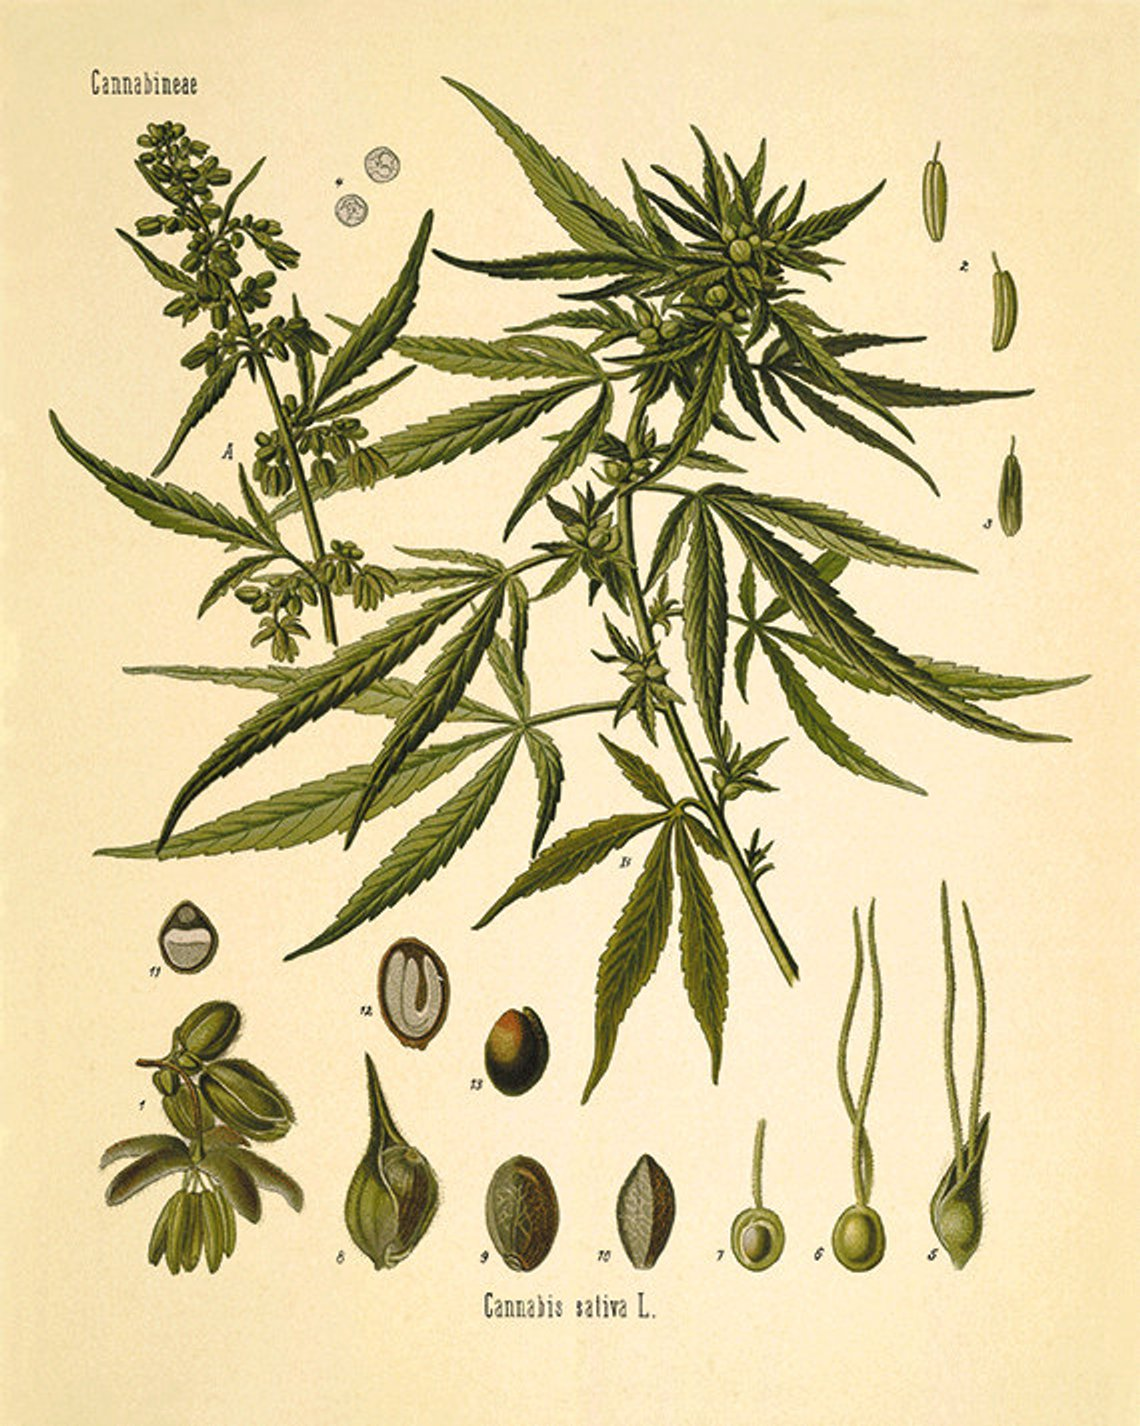 This gorgeous botanical illustration by Herman A. Kohler is from a series of hand colored litographs. It comes from the 1887 German book of Medicinal Plants.